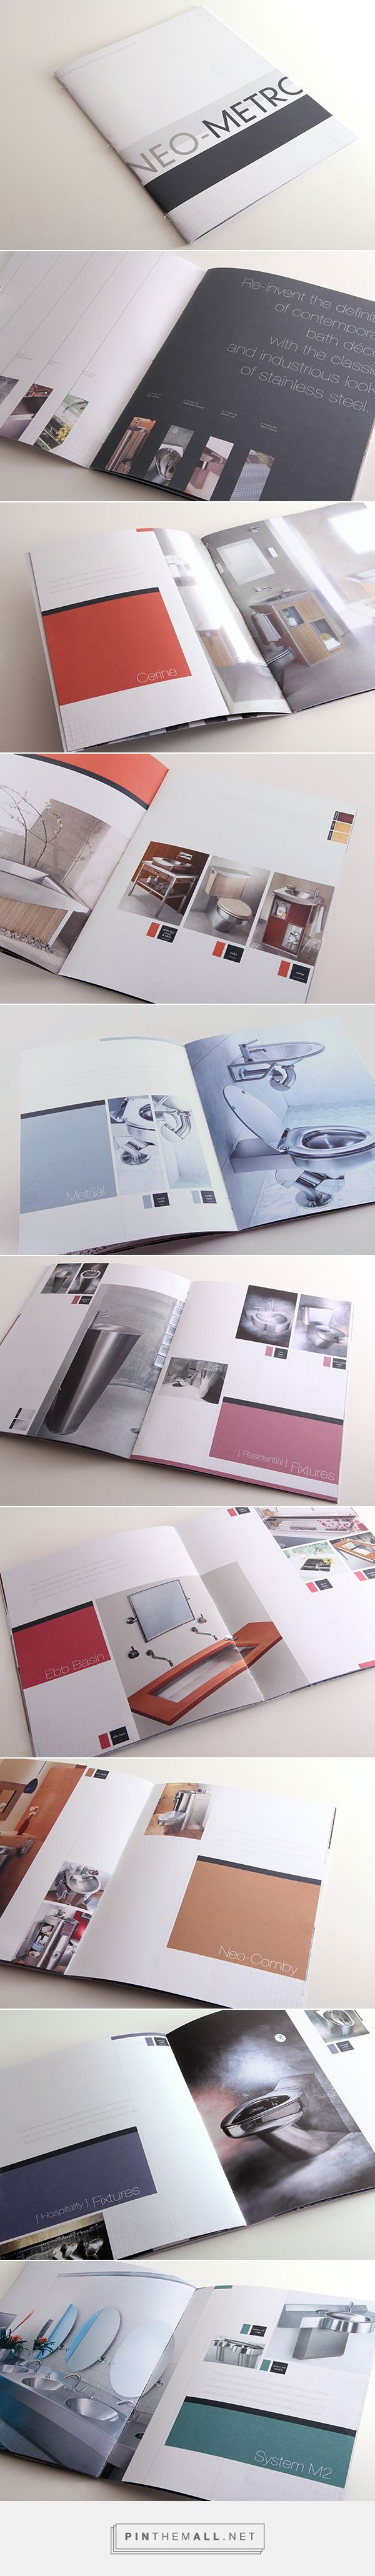 Product Brochure - Neo-Metro by Dennis Purcell